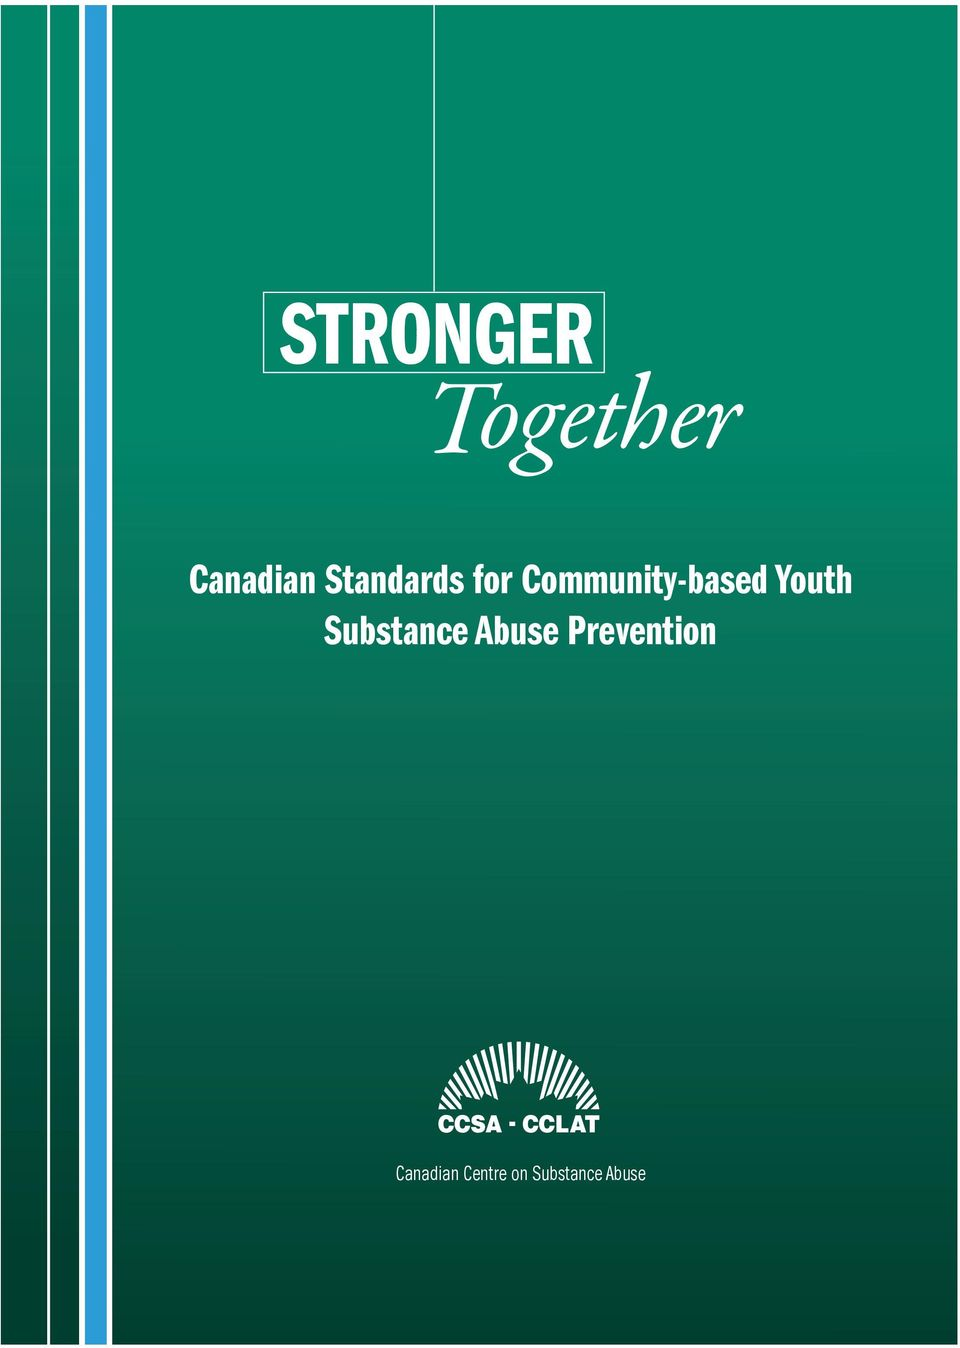 Stronger Together Canadian Standards For Youth Substance. Spinal Centers Of Texas Best Buy Alarm System. Commercial Free Images Ms Society Of Michigan. San Diego Real Estate Attorney. Complete College Georgia Fax To Email Account. Pest Control Rochester Ny Credit Checks Free. Goldman Sachs Asset Mgmt Installing Sugar Crm. Bariatric Surgery Center Of Excellence Criteria. Postal Services For Small Businesses